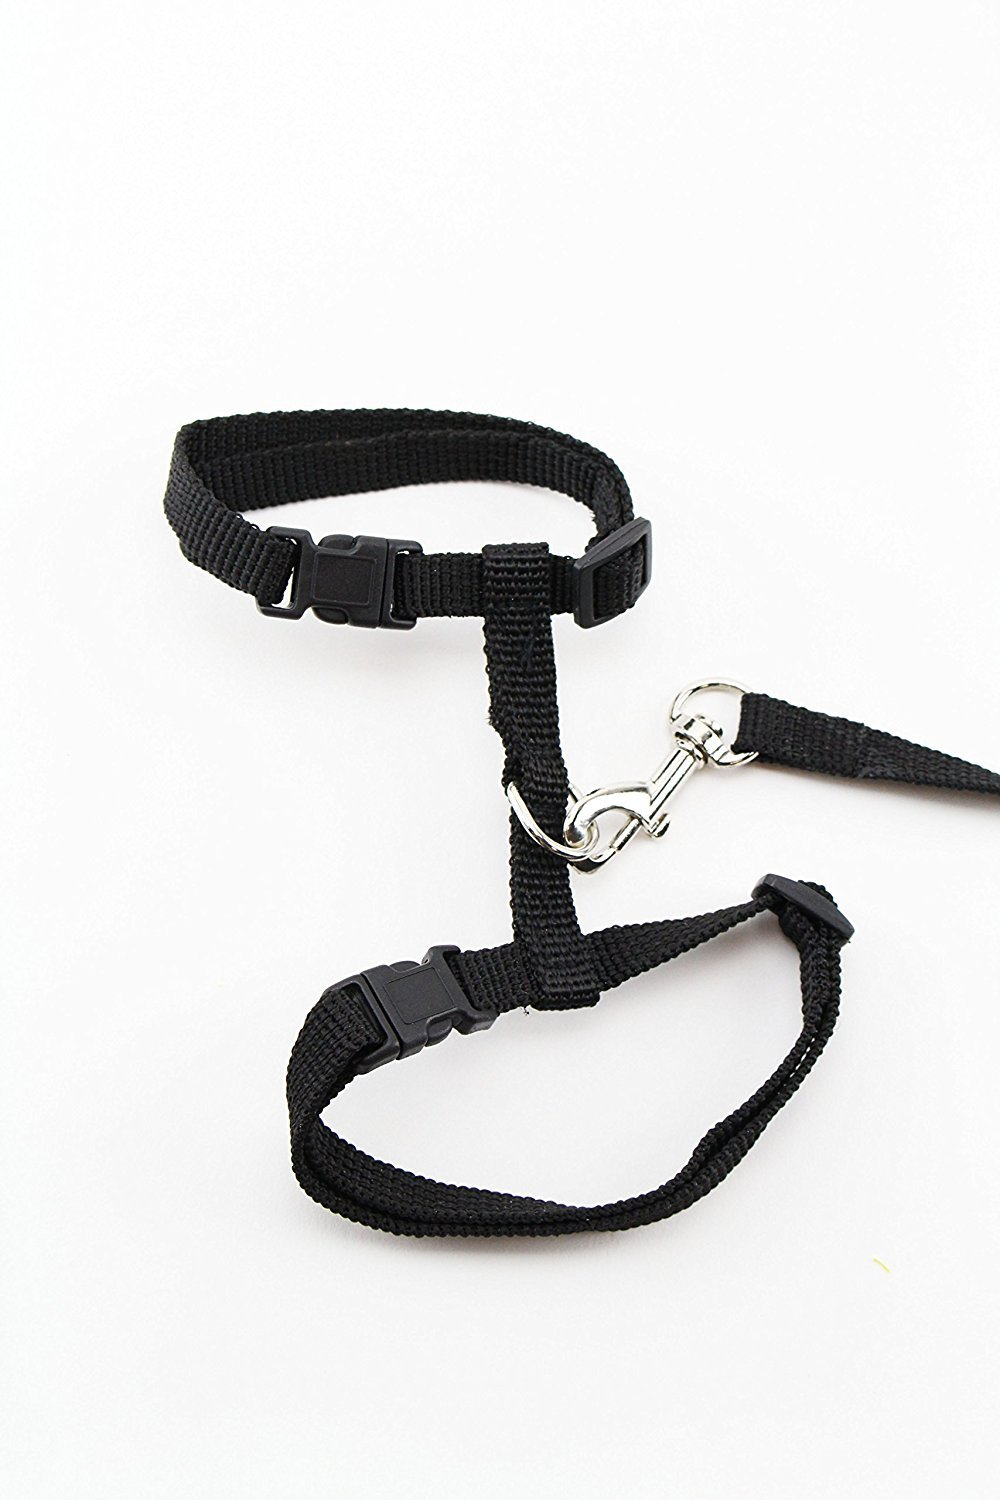 Black Midlee Adjustable Nylon Cat Harness & Leash by (Black)